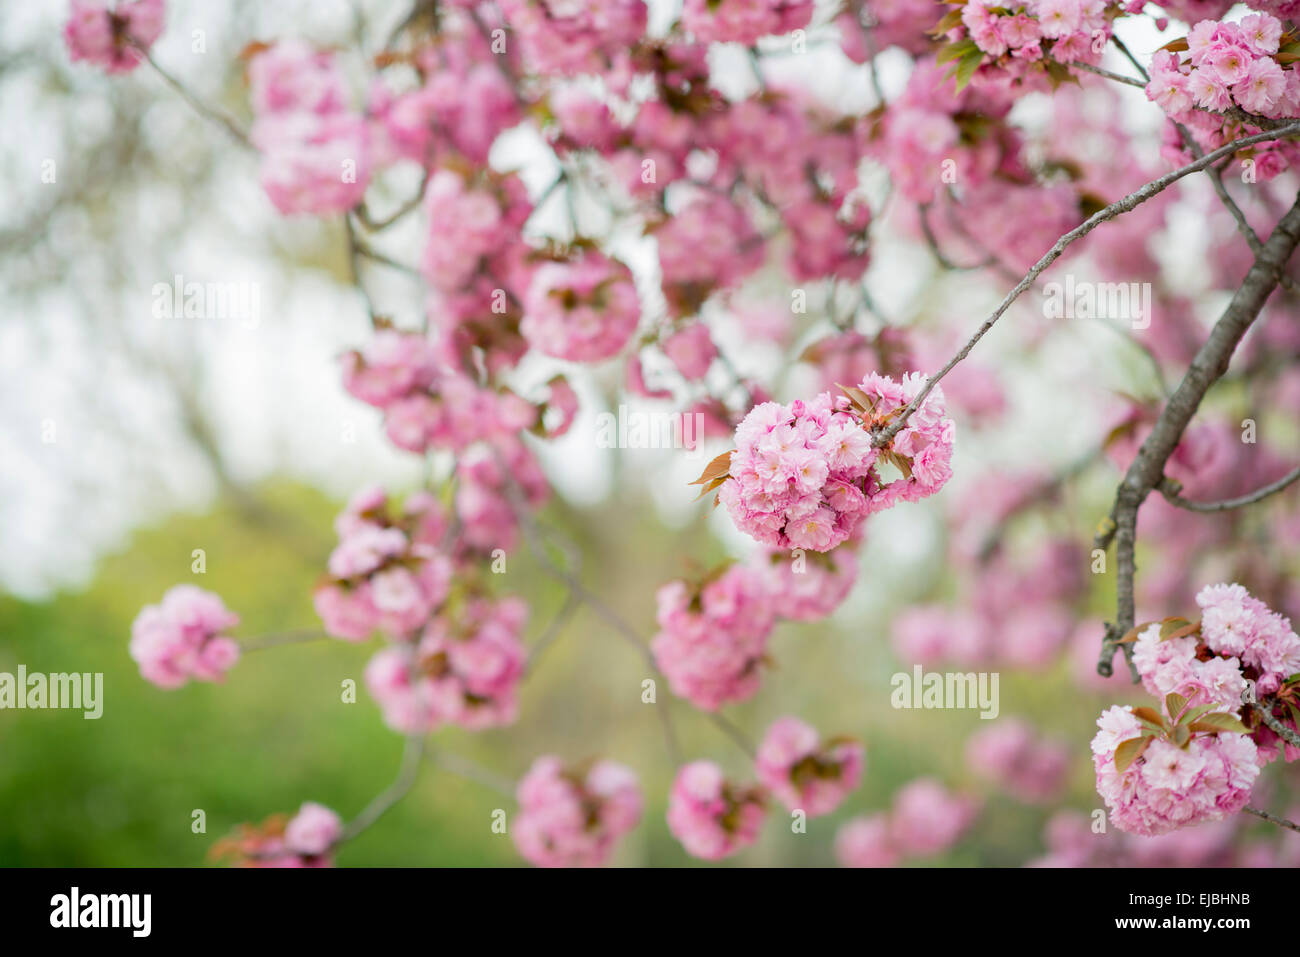 Blossoms of Kwanzan Cherry Tree in the Jardin des Plantes, Paris, France, spring - Stock Image